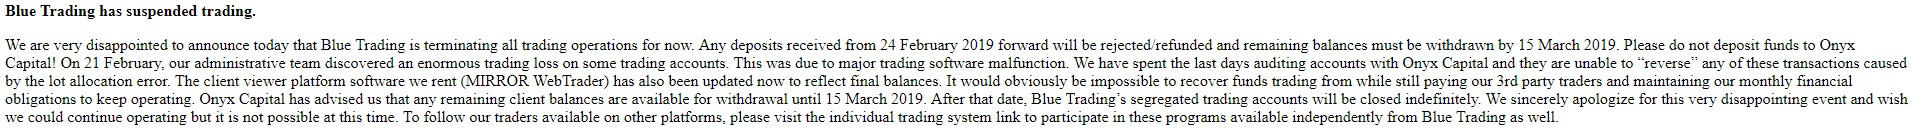 Blue Trading has suspended trading - screenshot from bluetrading.com